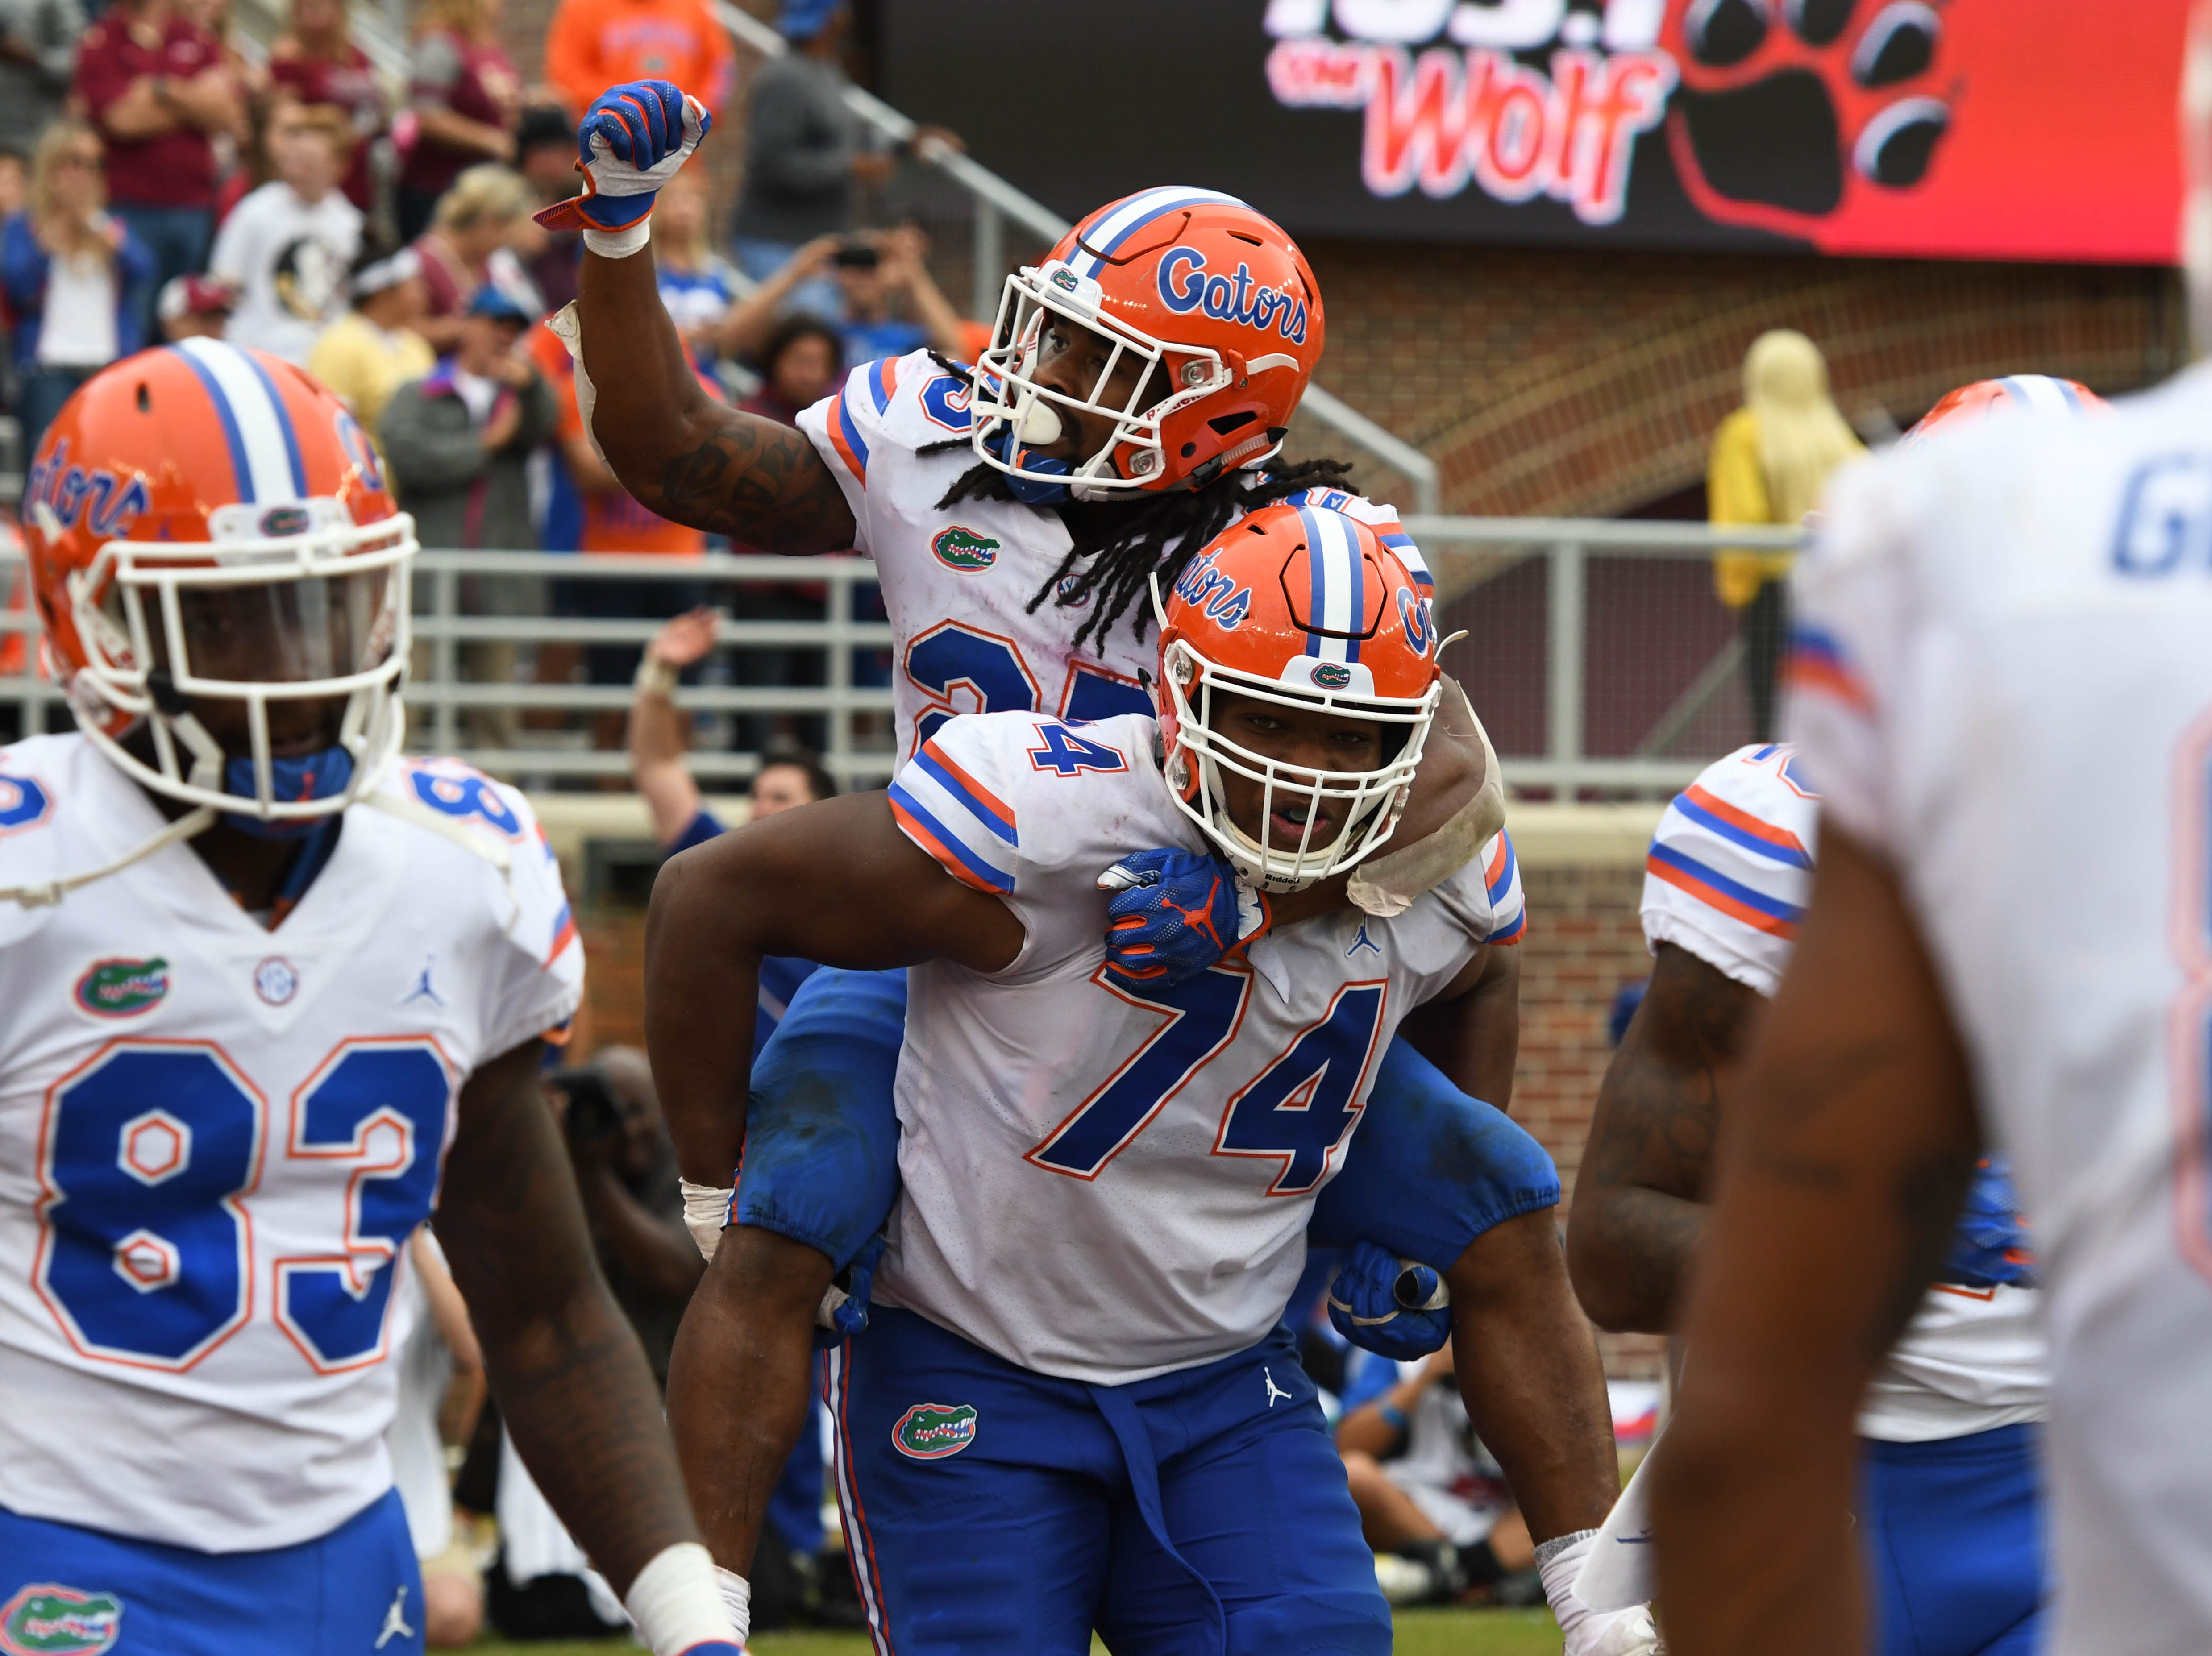 UF players celebrating after scoring a touchdown in the fourth quarter of the FSU game against UF at Doak Campbell Stadium on Novemeber 24, 2018.